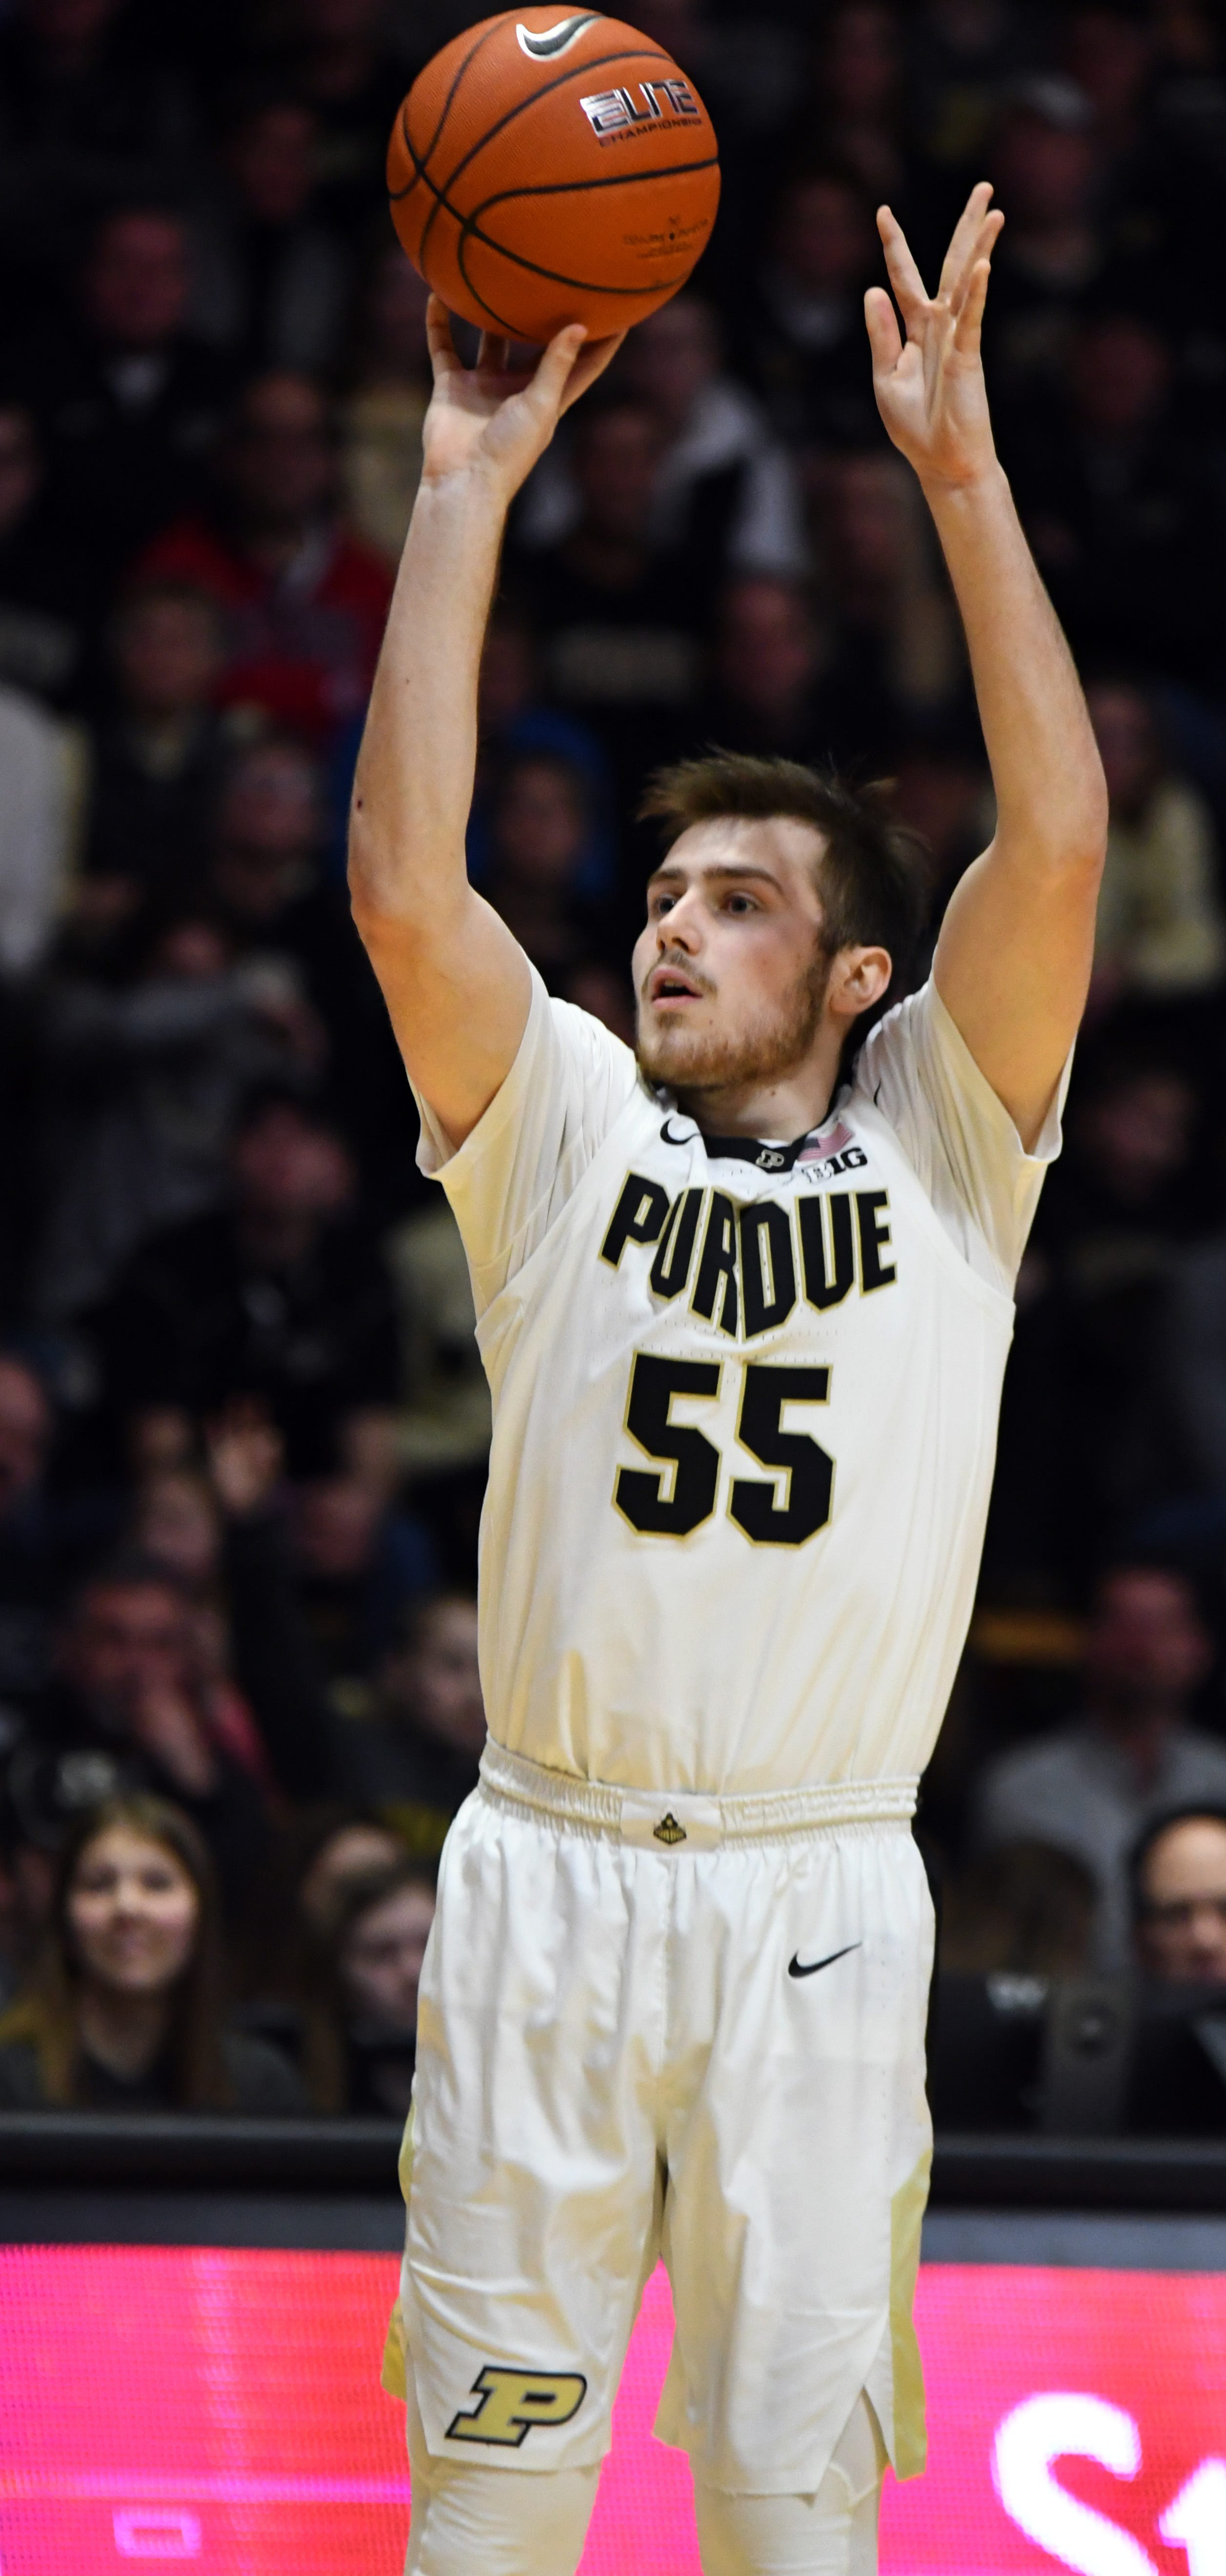 Action from Purdue's 89-54 win over Rutgers at Purdue University in West Lafayette on January 15, 2019. Sasha Stefanovic